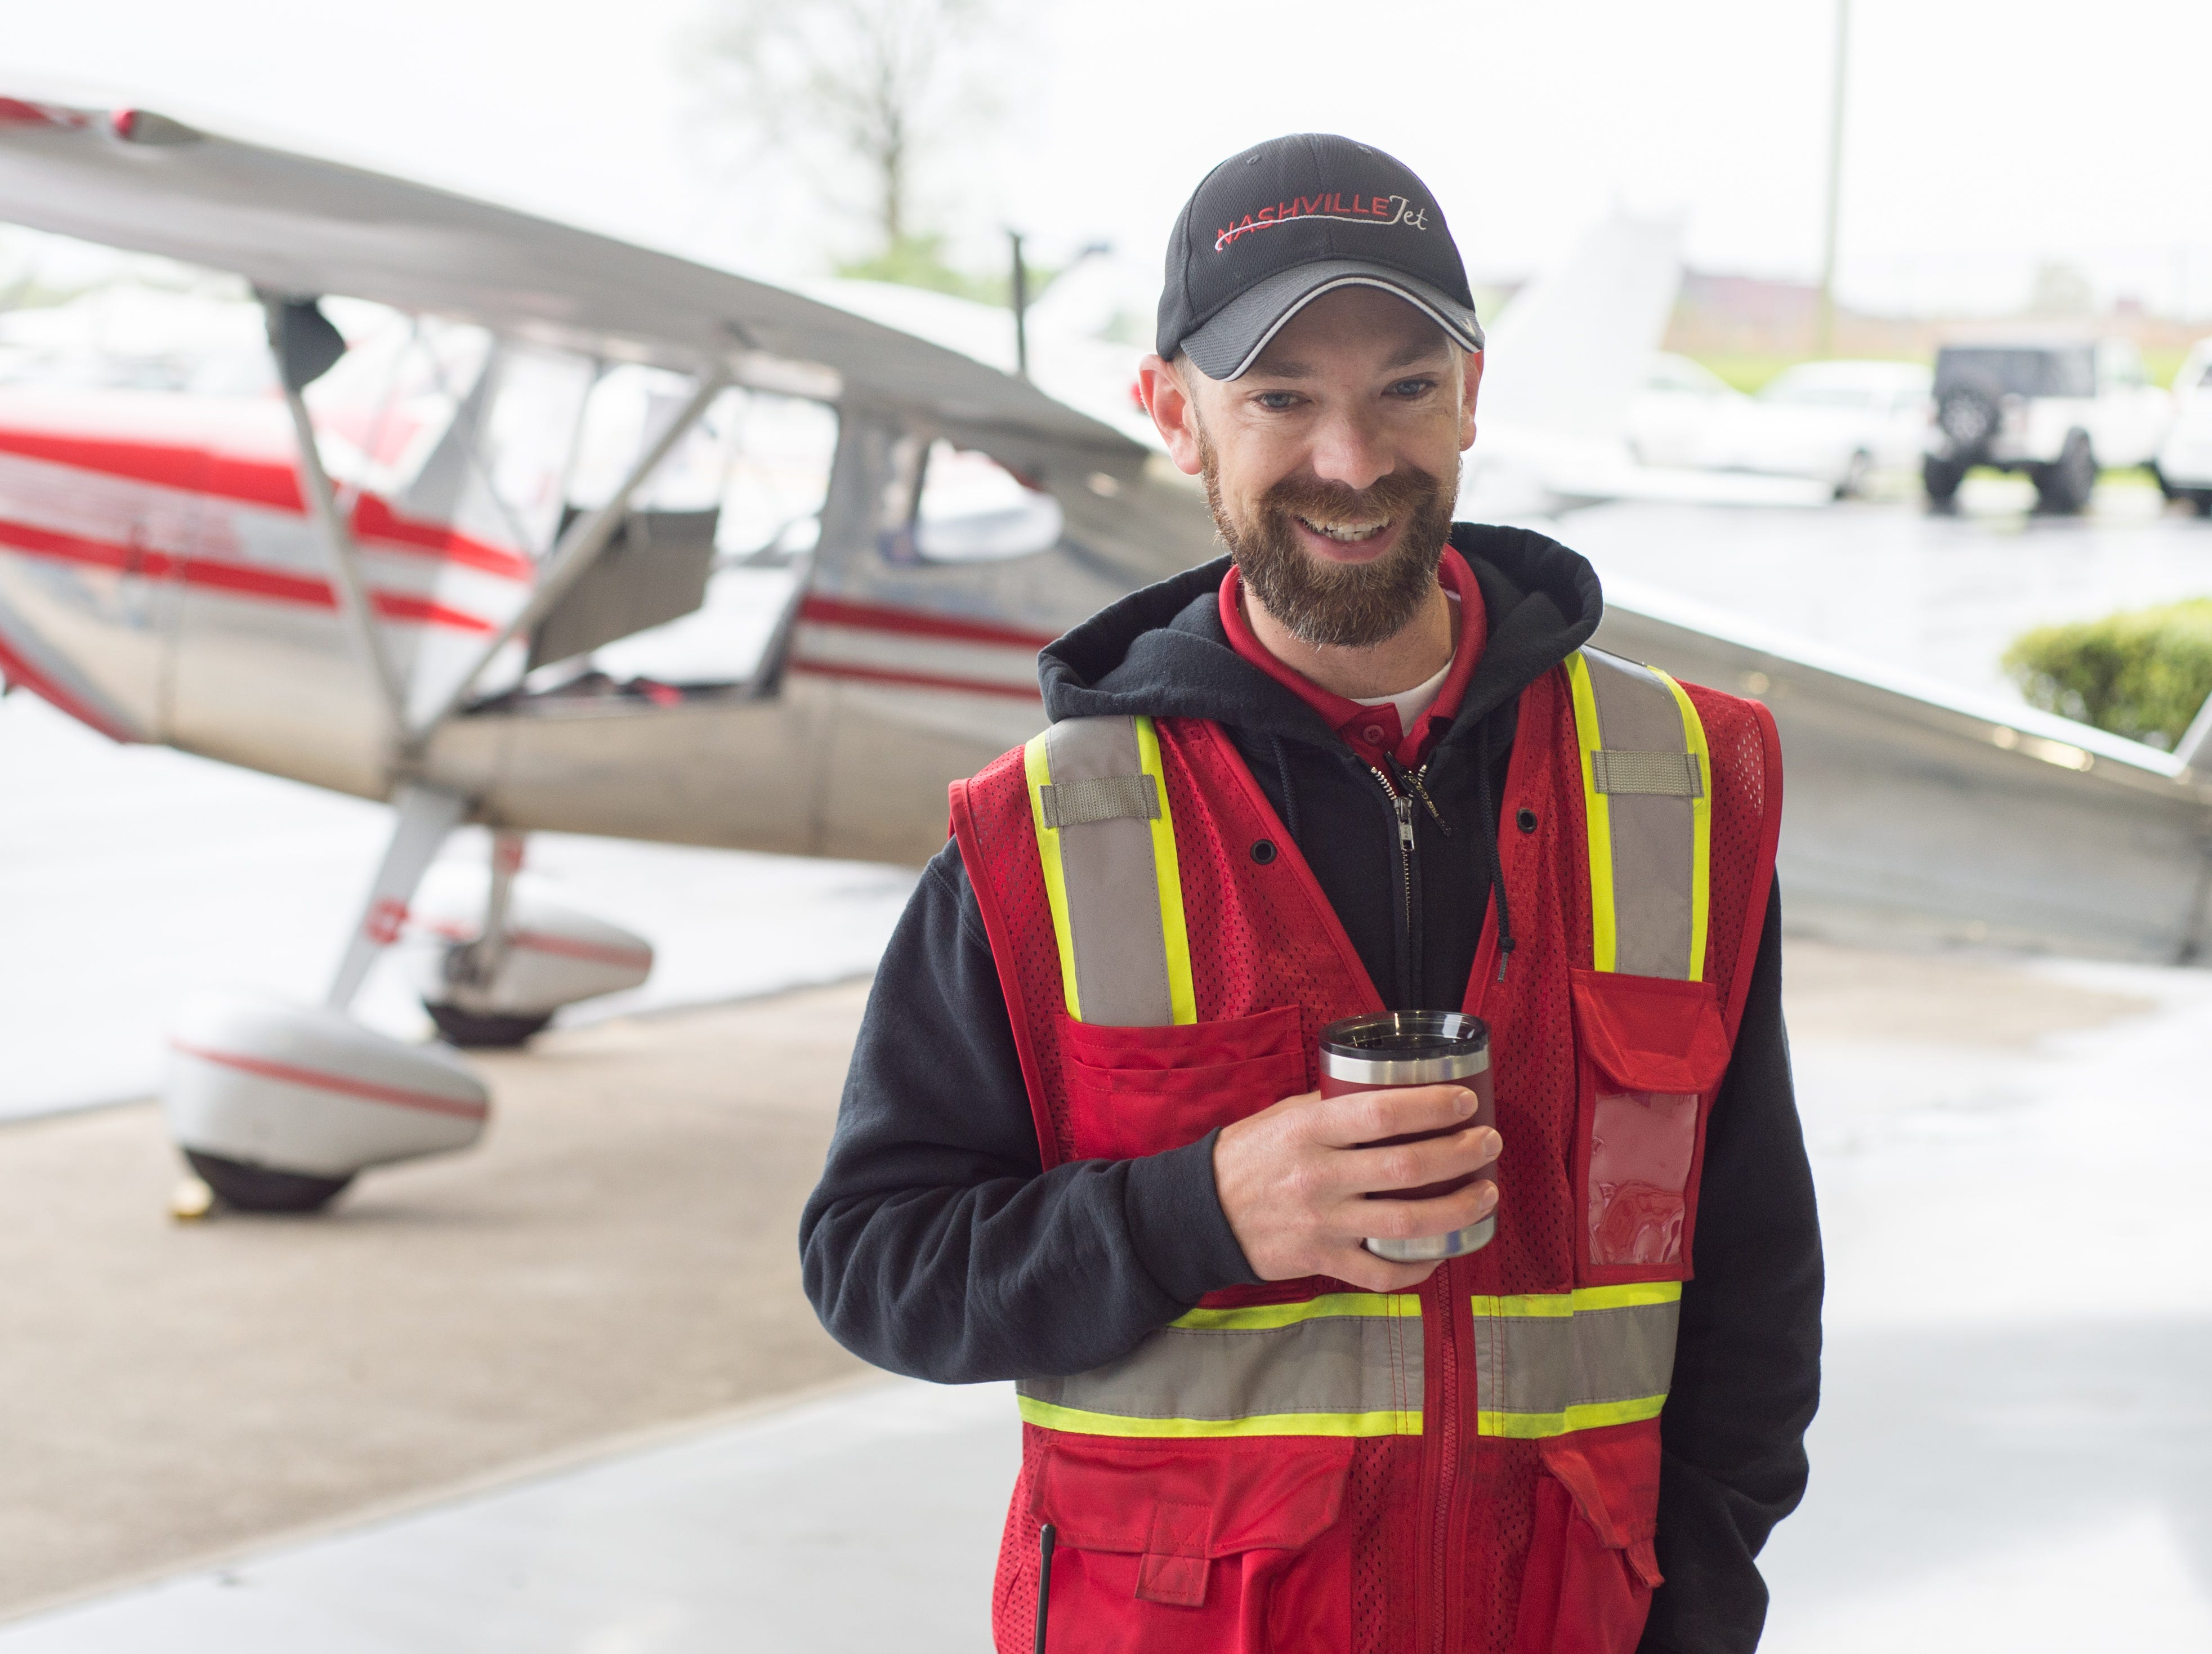 General Manager at Nashville Jet Jeff Dunham chats during a Fly-In Breakfast at the Sumner County Regional Airport in Gallatin on Saturday, April 13.